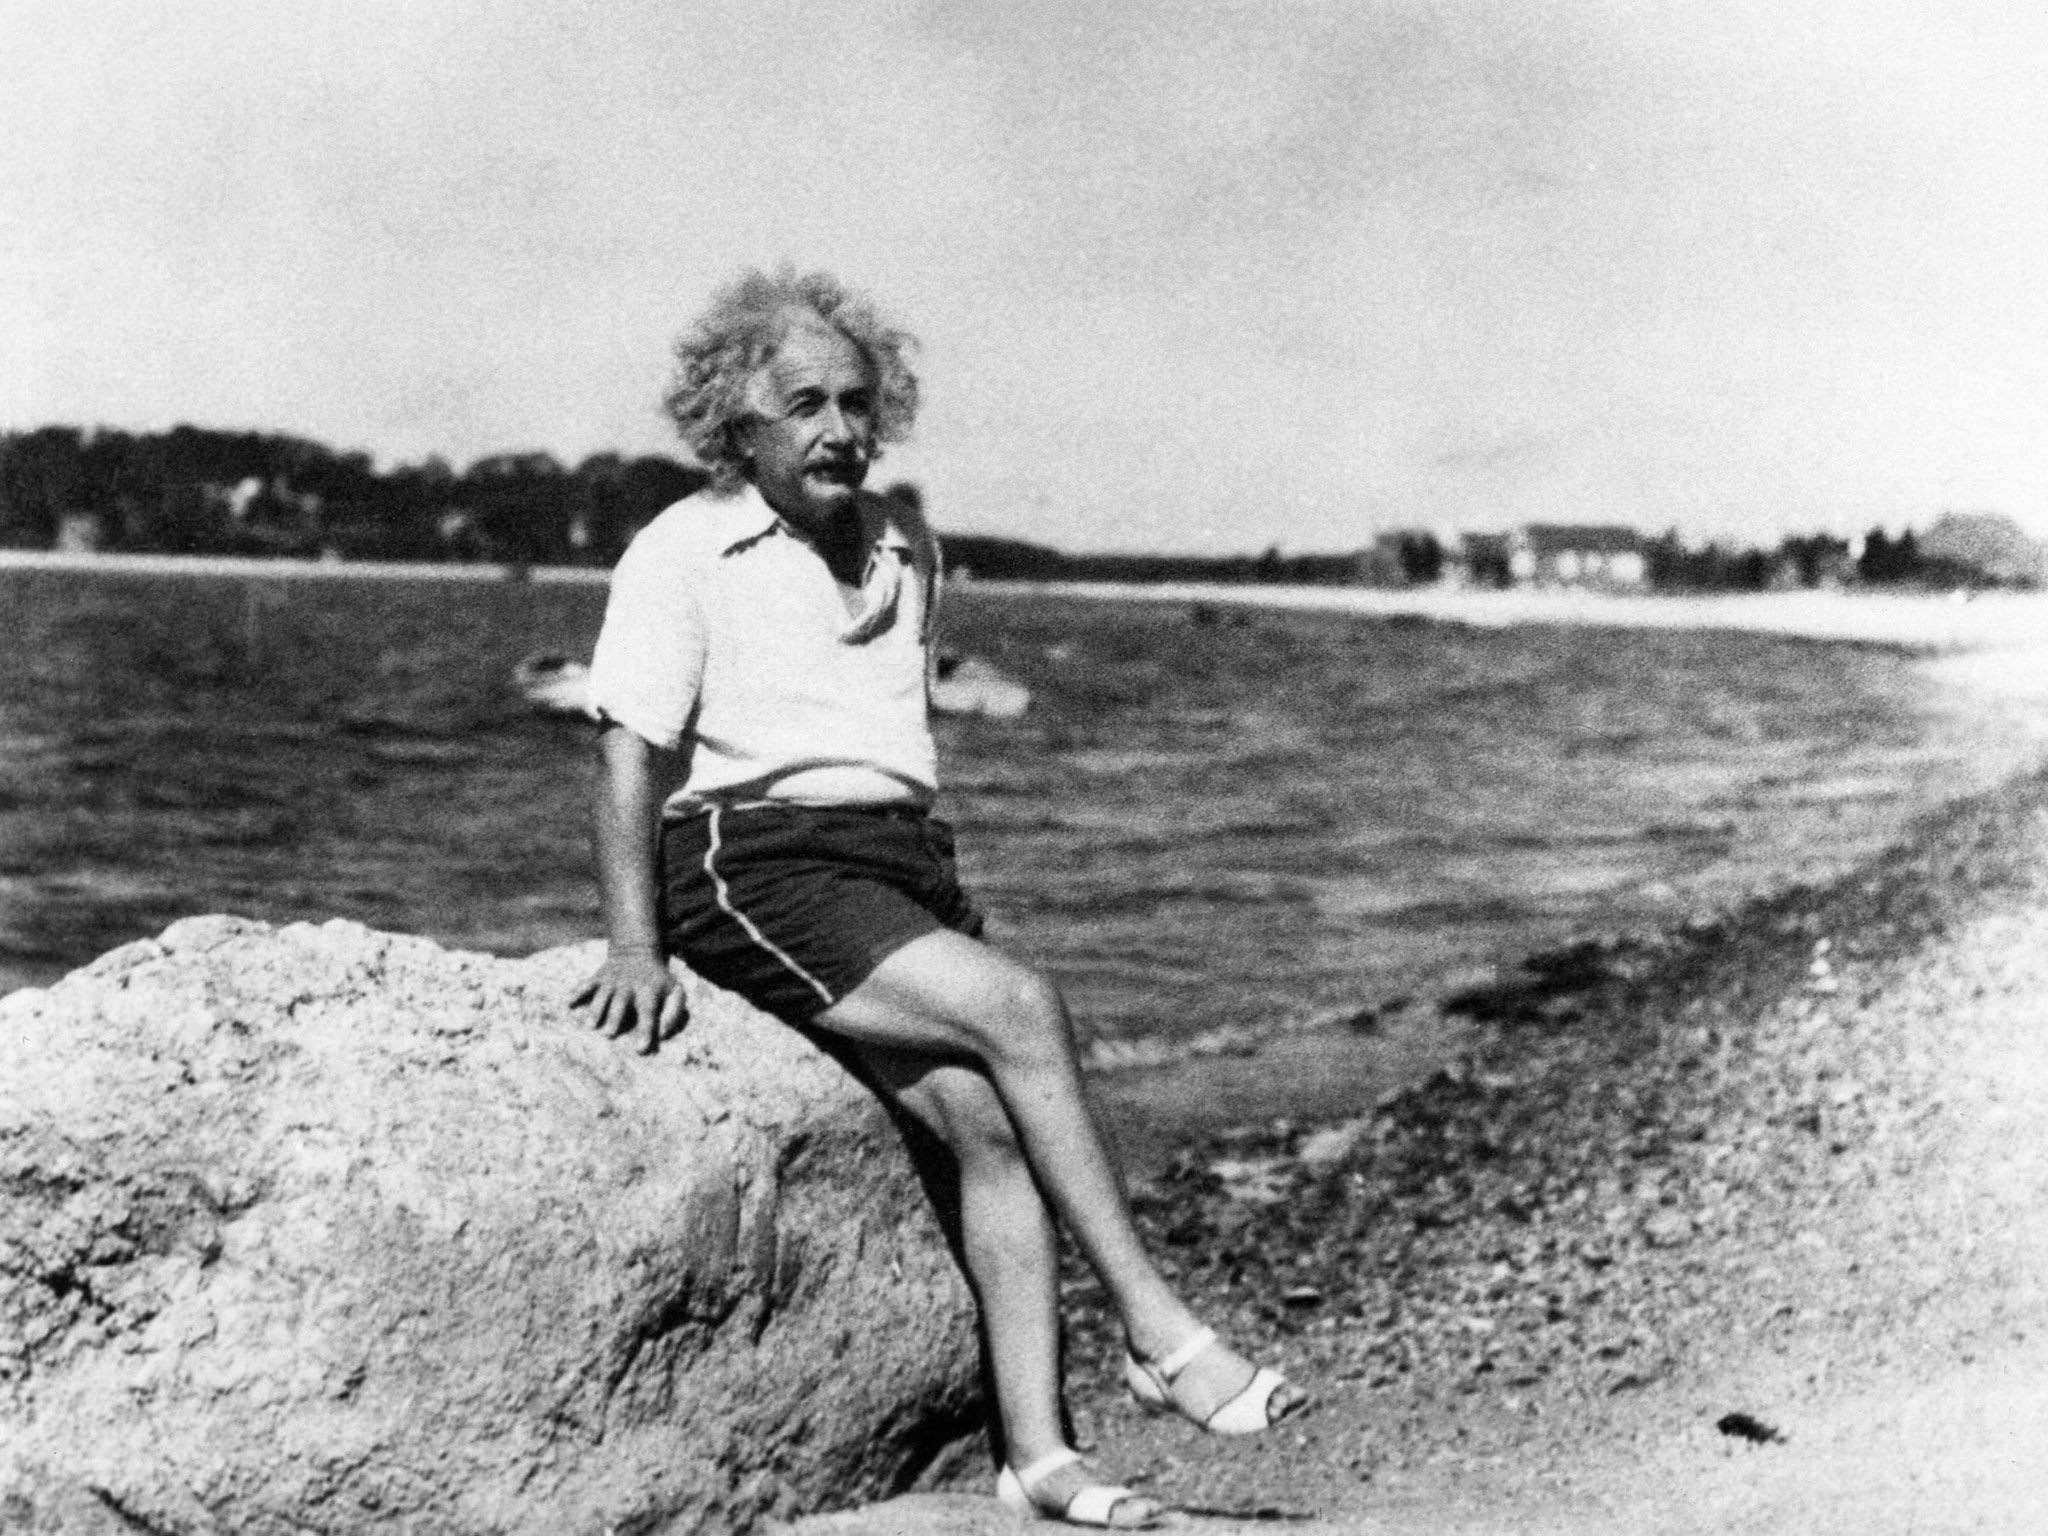 116. Einstein's sock (continued)